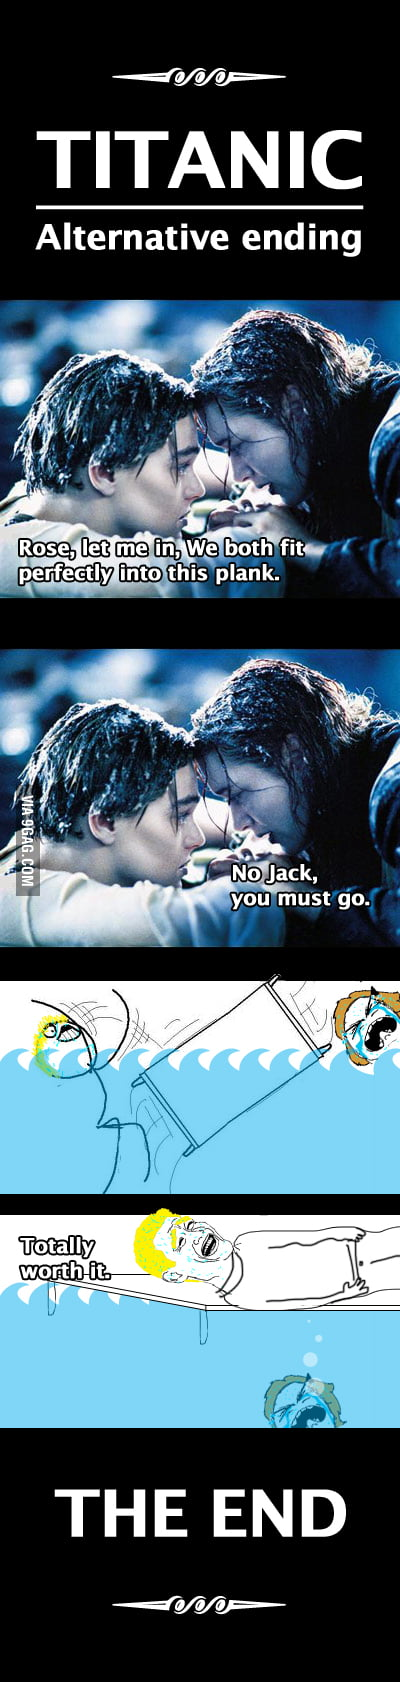 TITANIC: Alternative ending